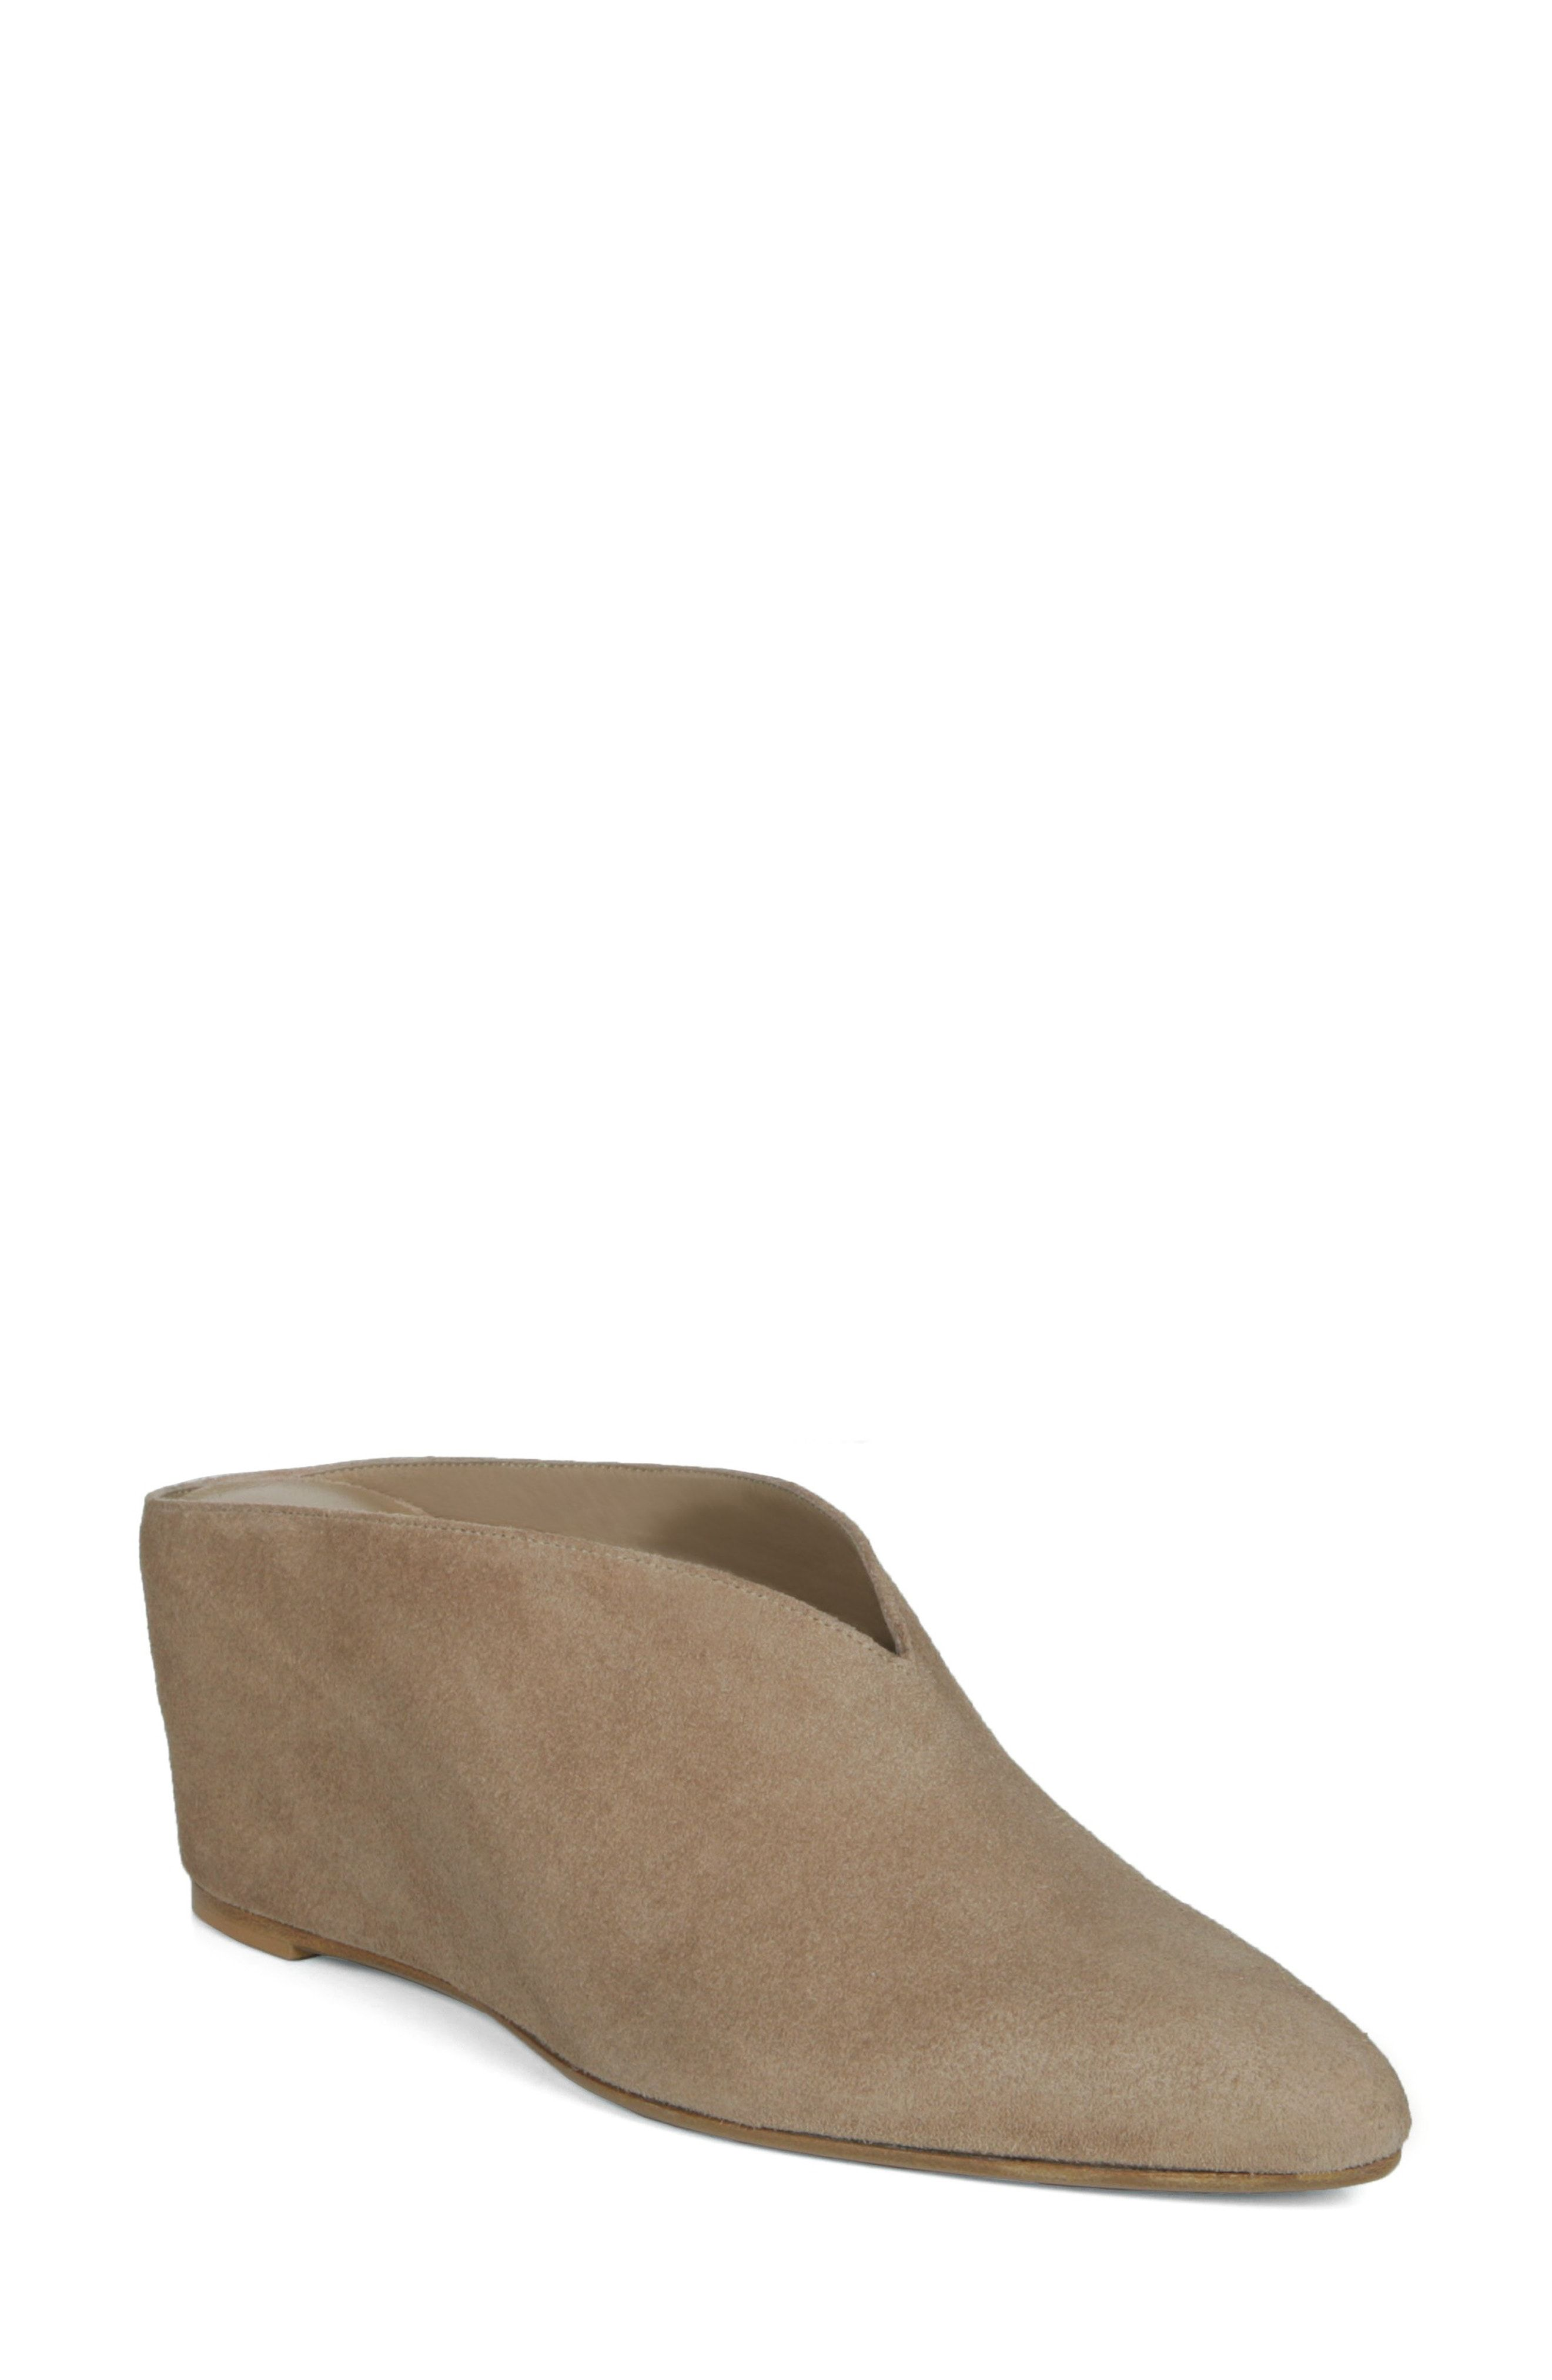 50f80918d4 Vince Kai Pointy Toe Wedge Mule available at #Nordstrom | Trunk club ...